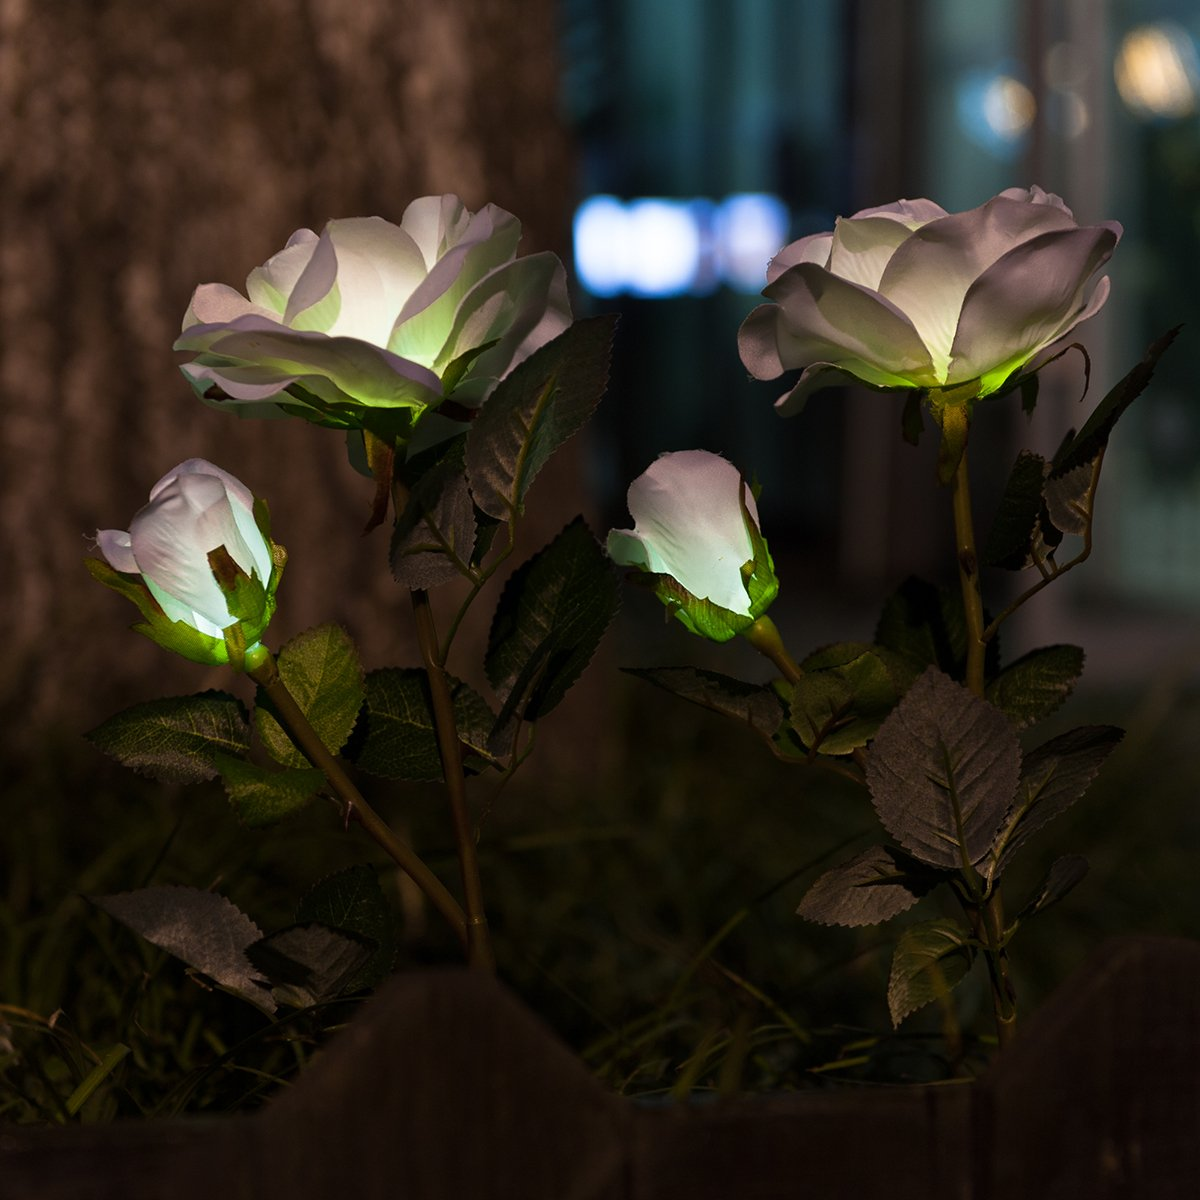 WED Outdoor Solar Garden Stake Lights 2 Pack Solar Powered Lights with 6 Rose Flower, White LED Solar Decorative Lights for Garden, Patio, Backyard